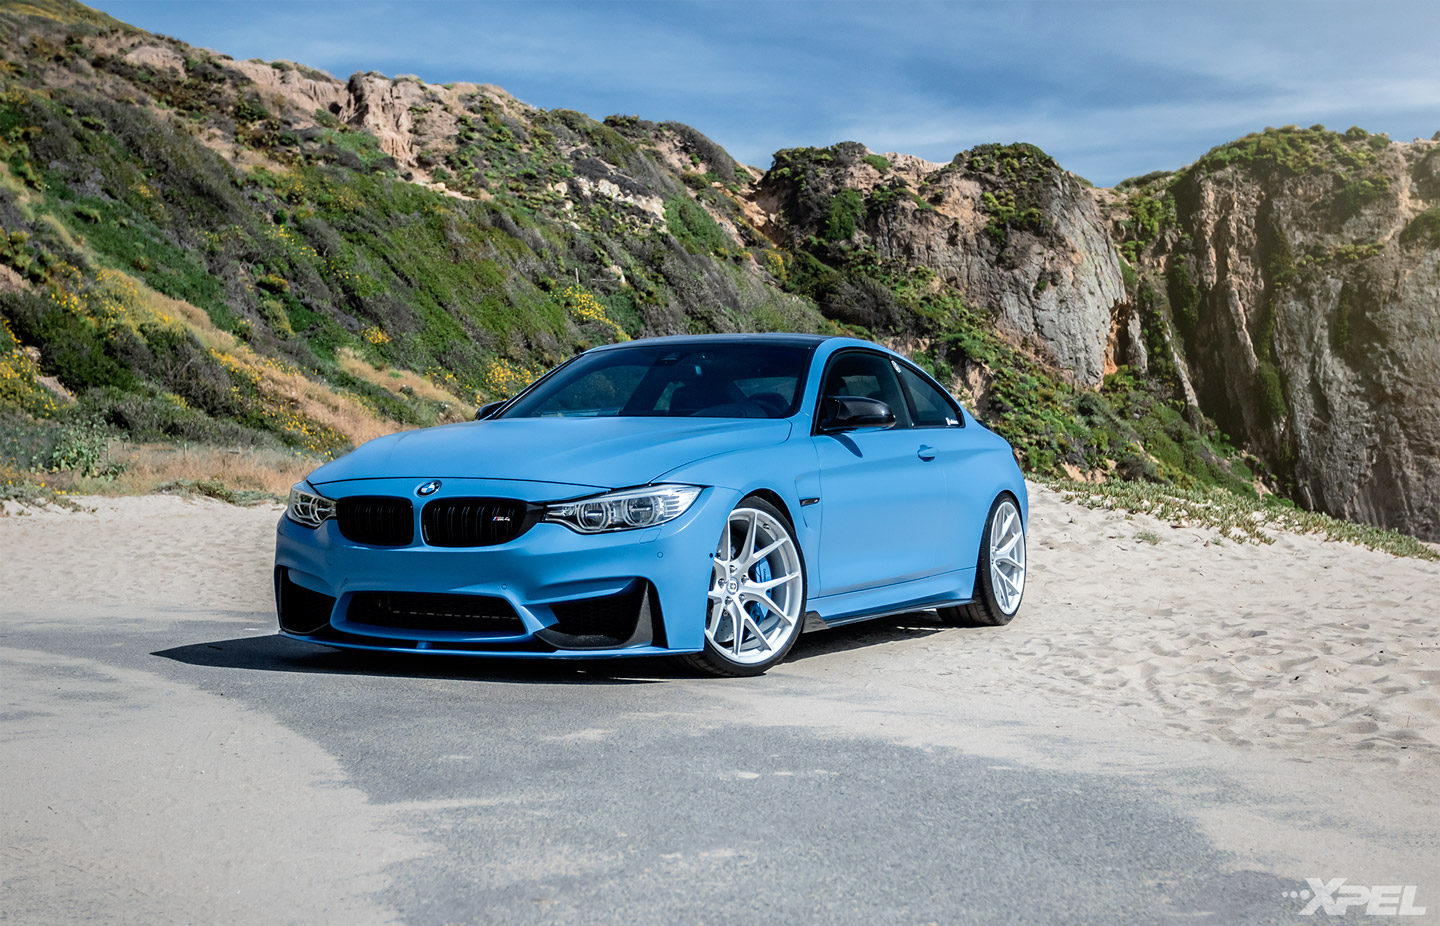 M4dness in Malibu